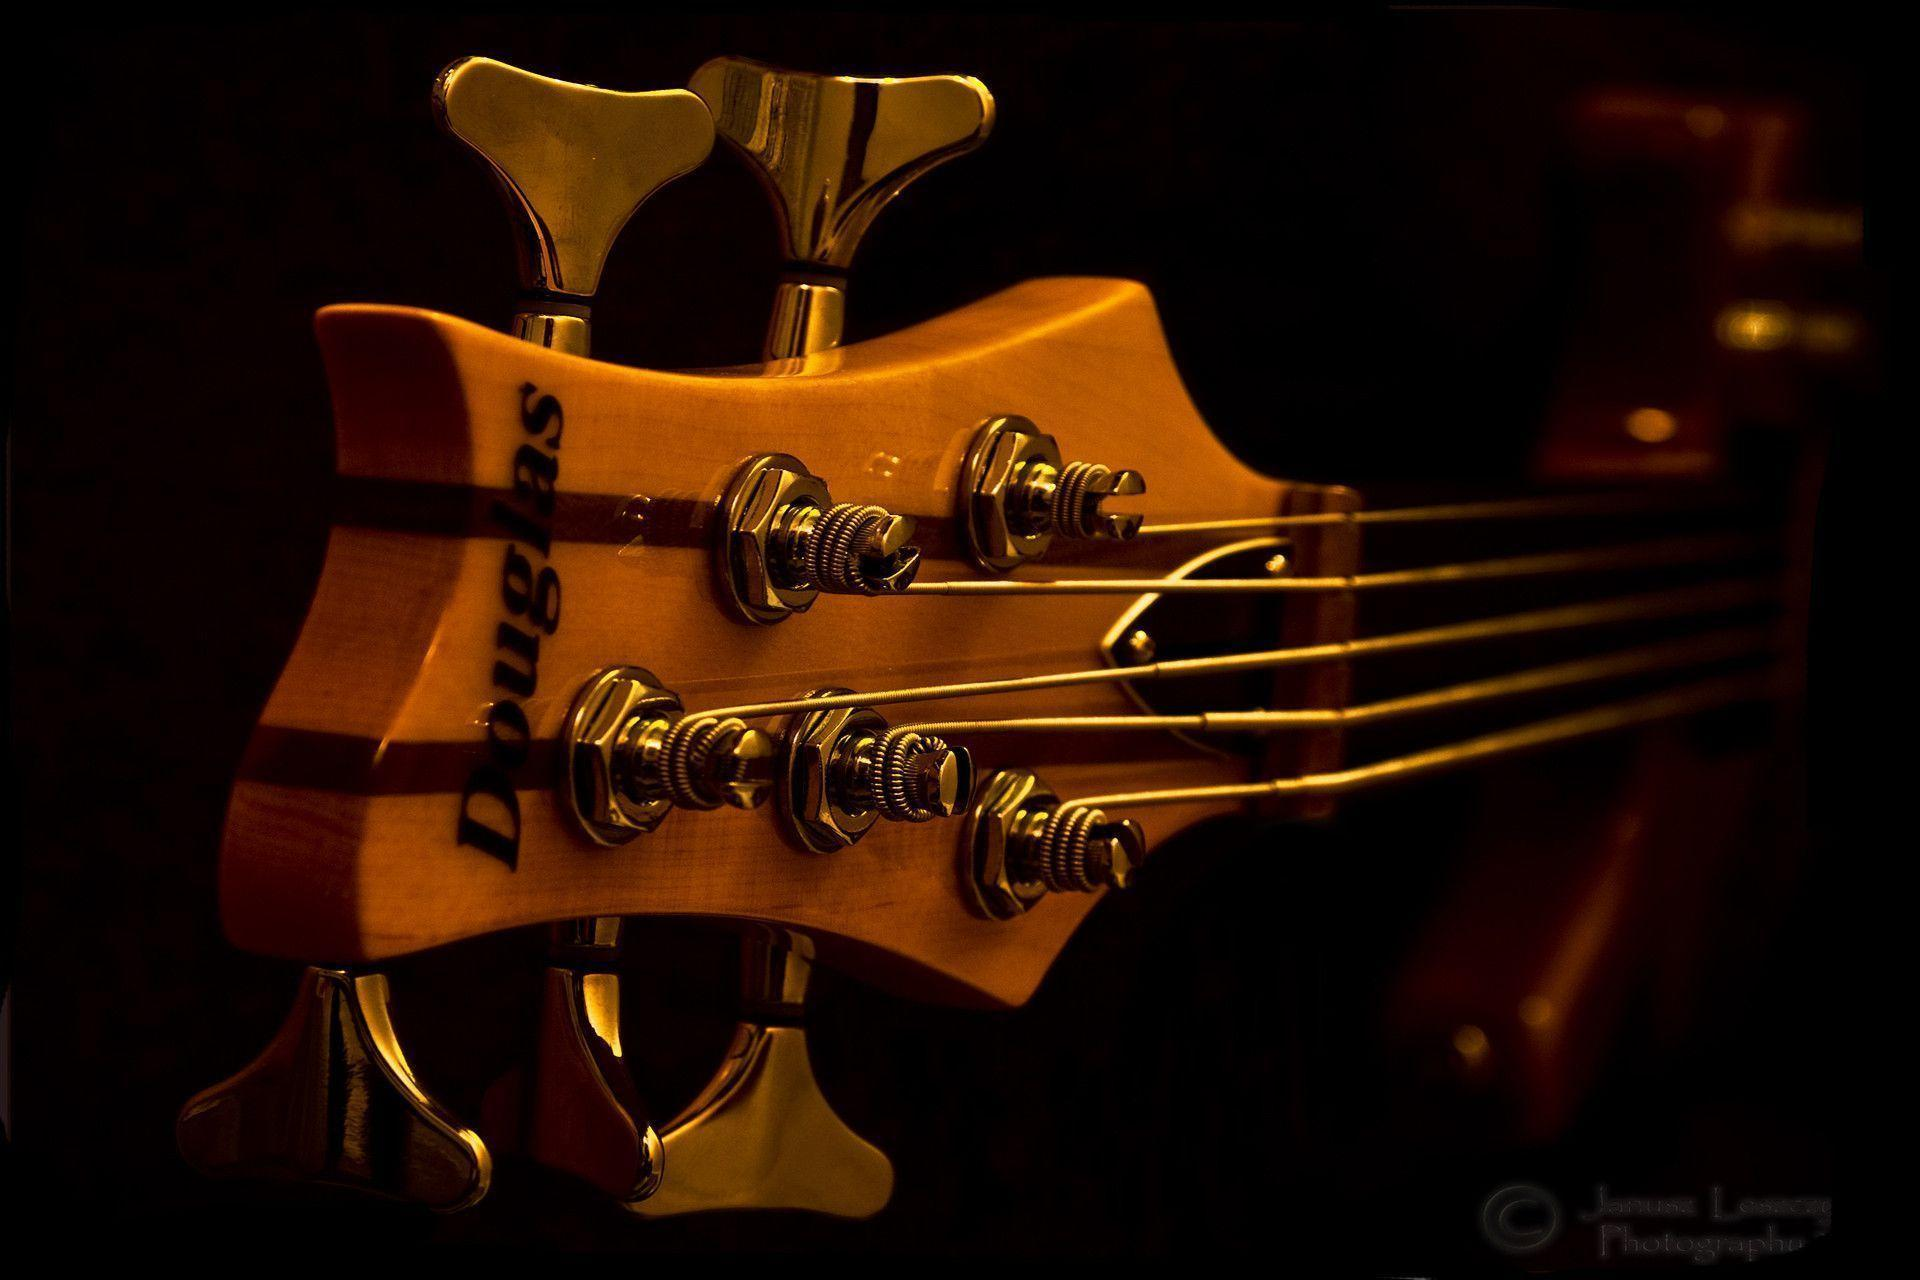 Wallpapers For > Ibanez Bass Guitar Wallpapers